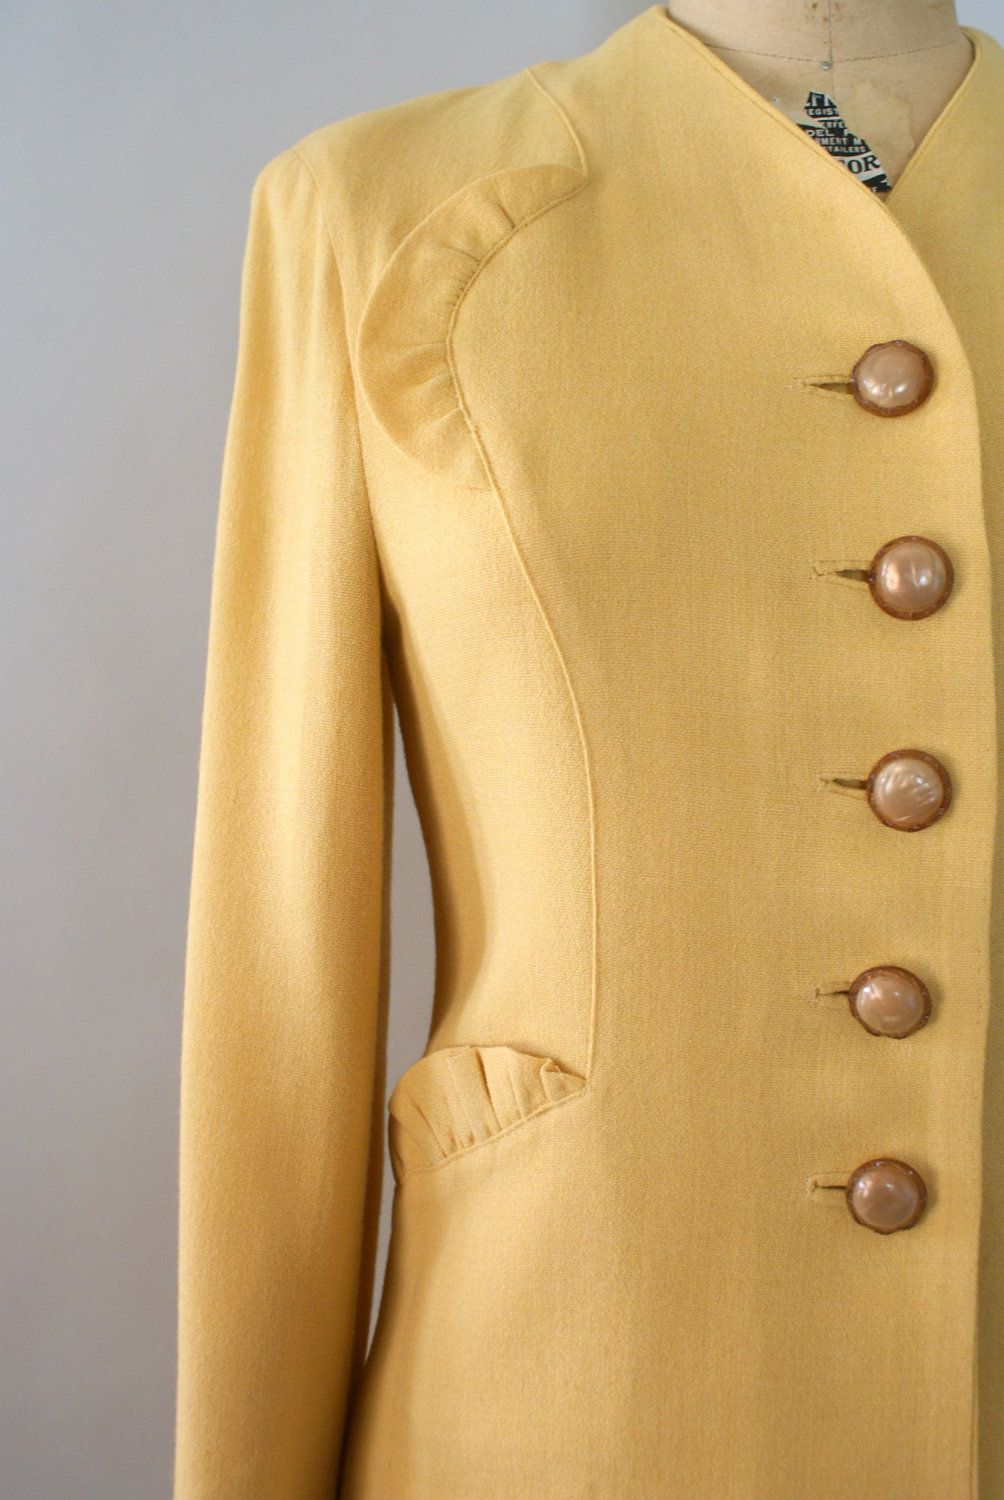 51140357280da Vintage 1940s Wool Skirt Suit - Golden Wheat Yellow Wool Dress Suit Jacket  and Skirt.